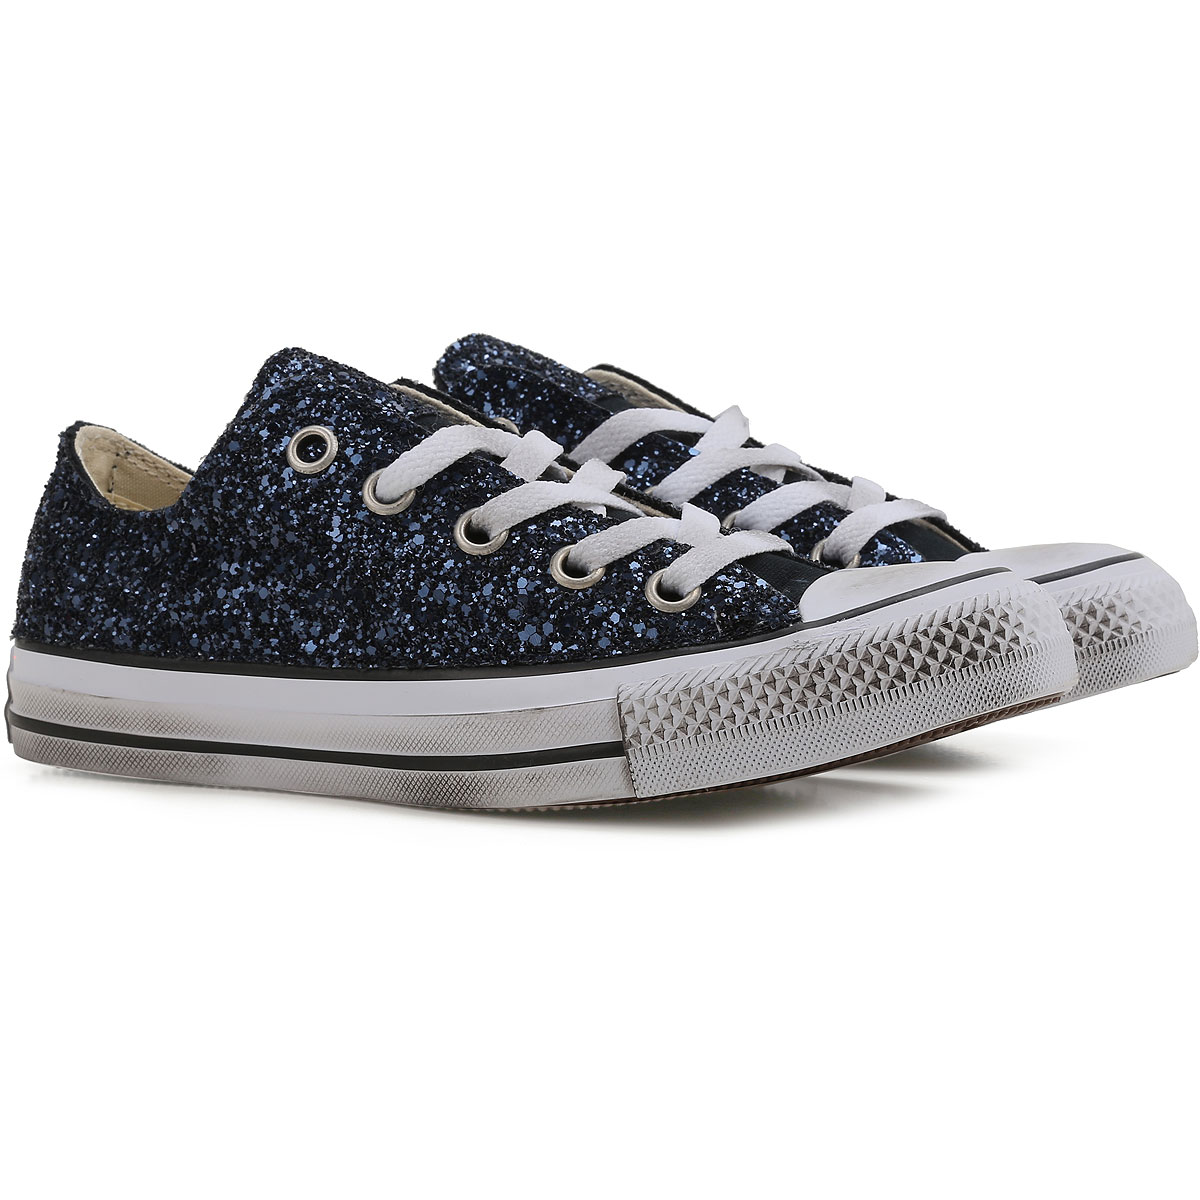 Converse Sneakers for Women Limited Edition USA - GOOFASH